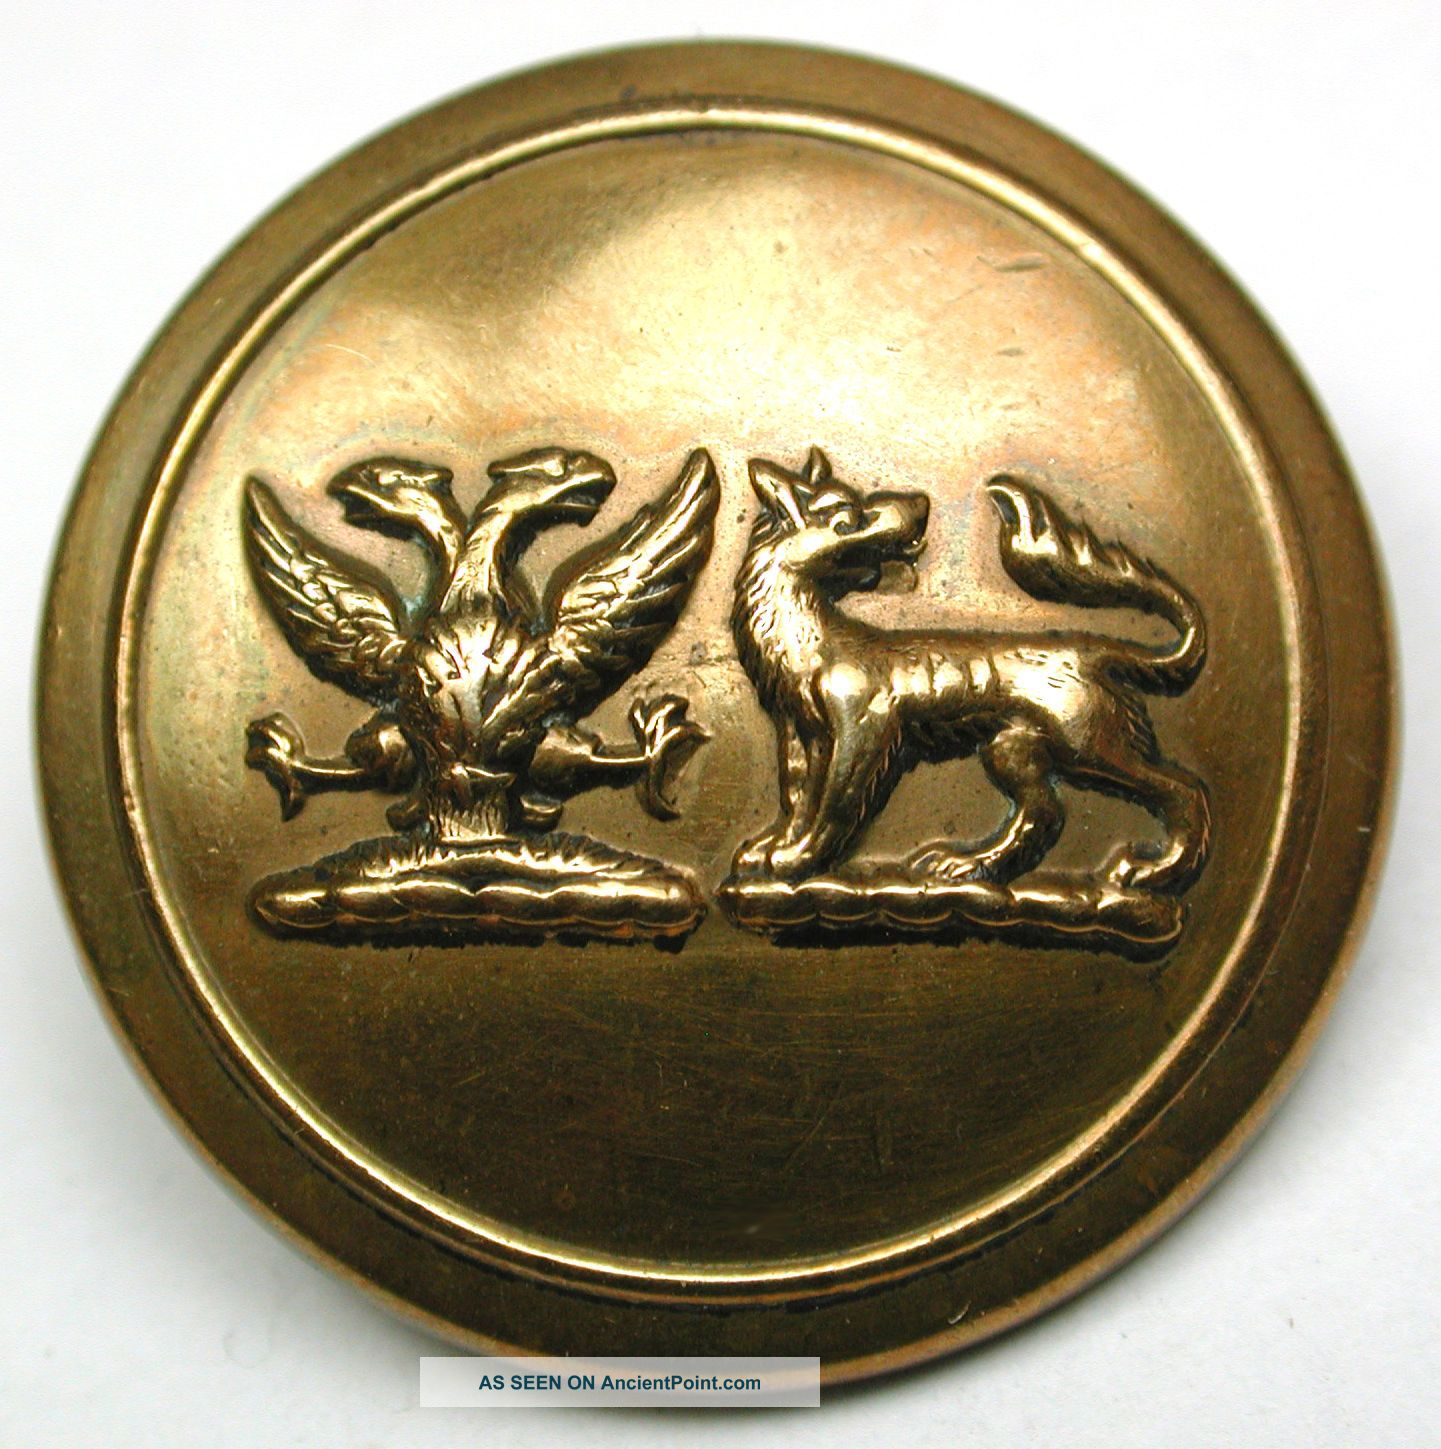 Antique Livery Button Dual Crest - 2 Headed Eagle & Wolf - Firmin - 1